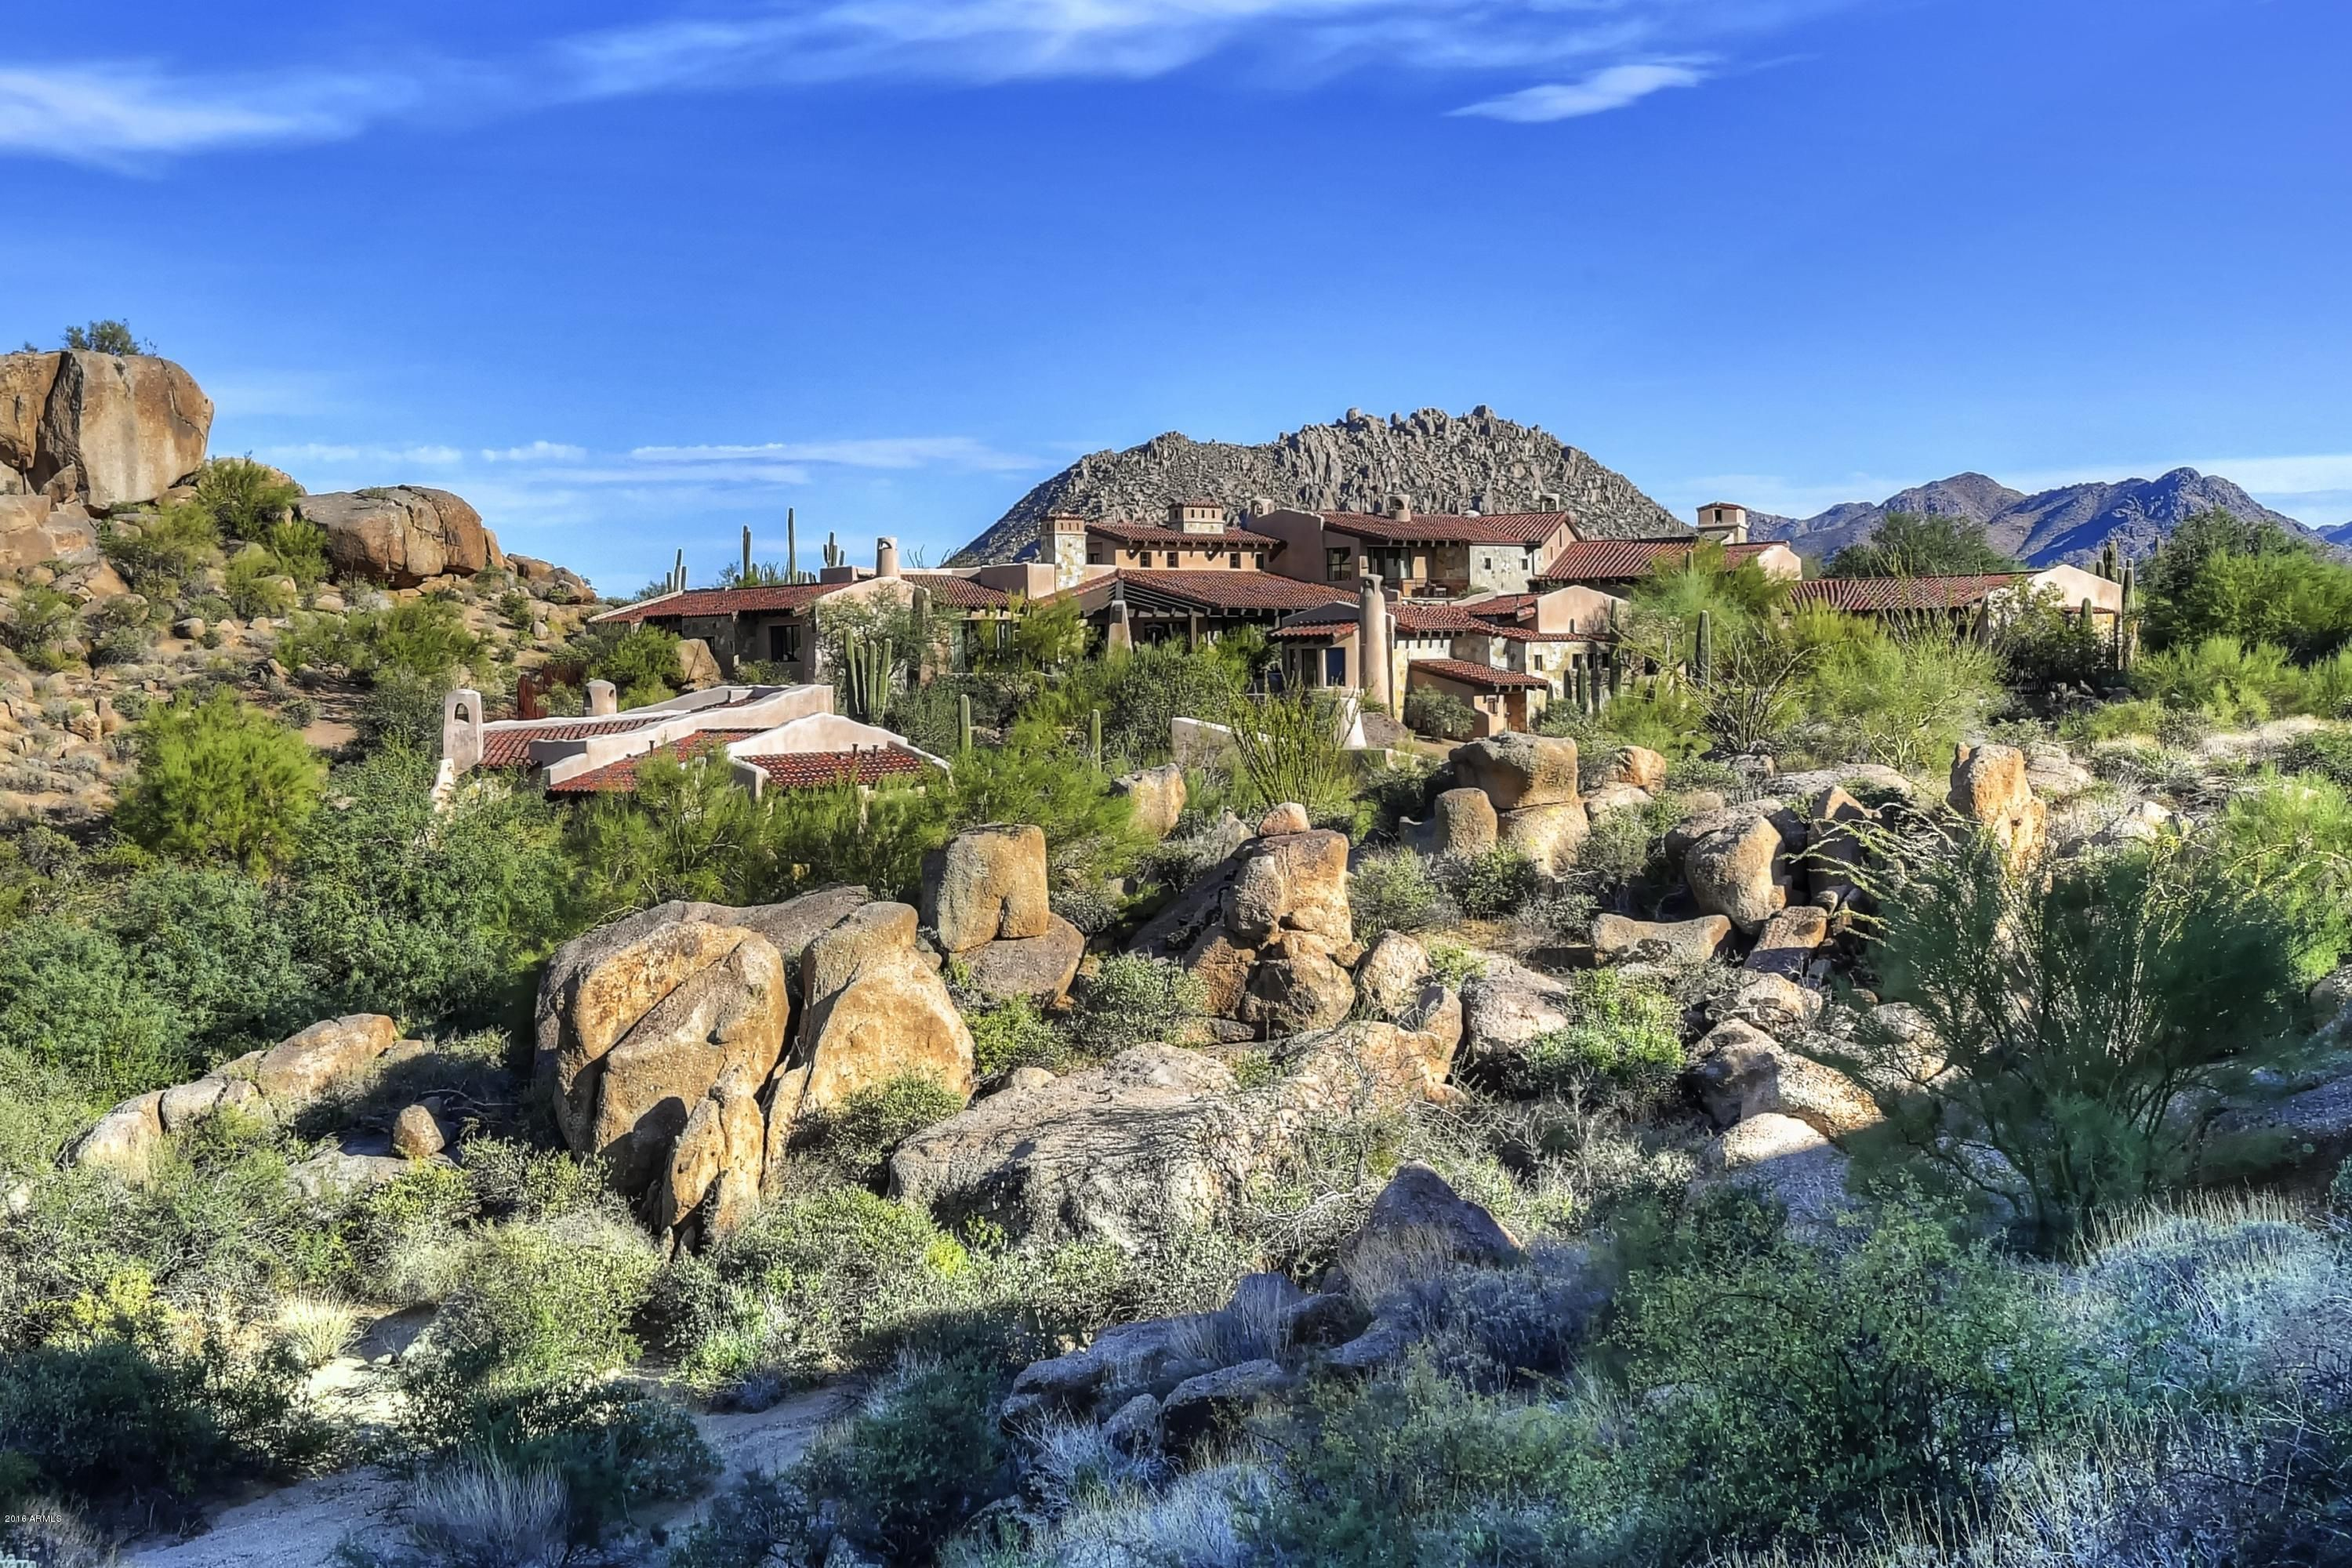 Photos And Property Details For 27341 N 102ND STREET SCOTTSDALE - View House Prices On Map In Us